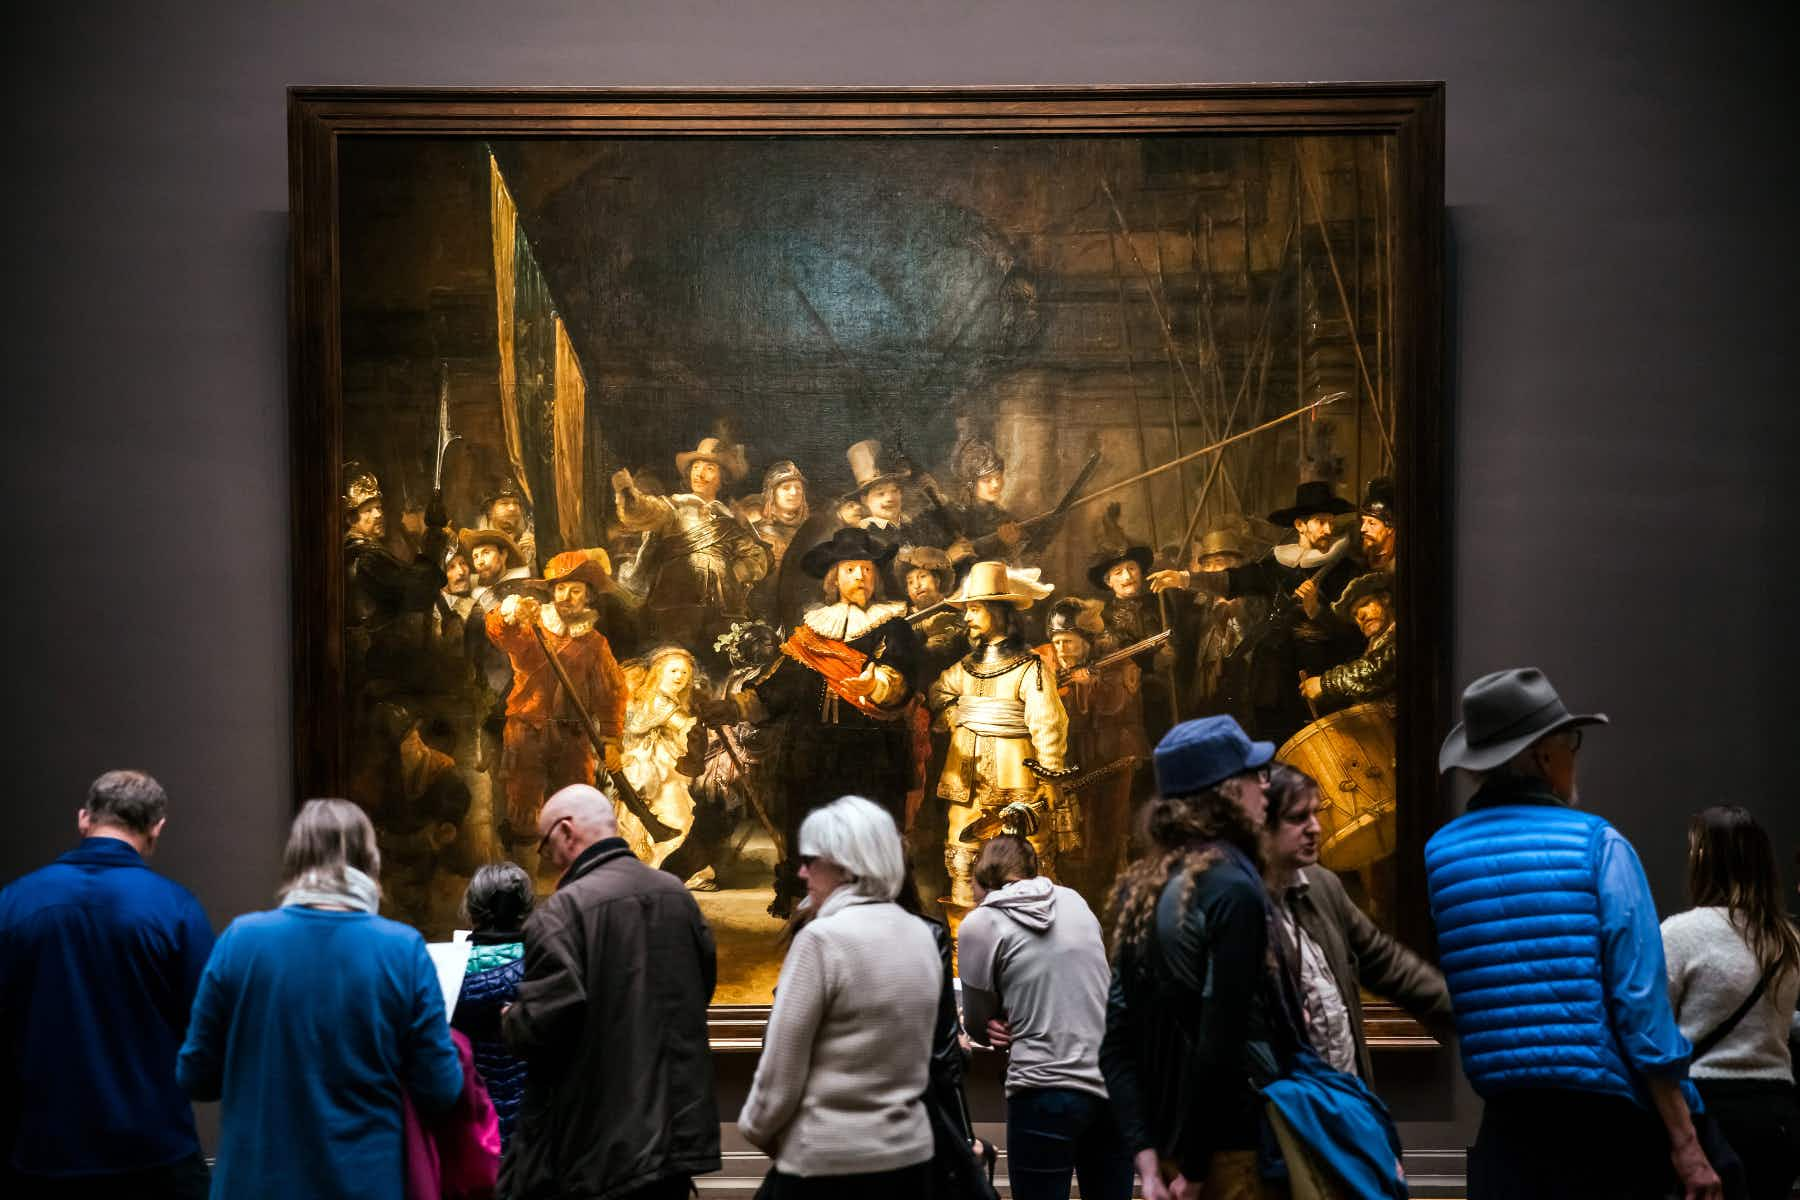 The Night Watch by Rembrandt set to be restored in full public view